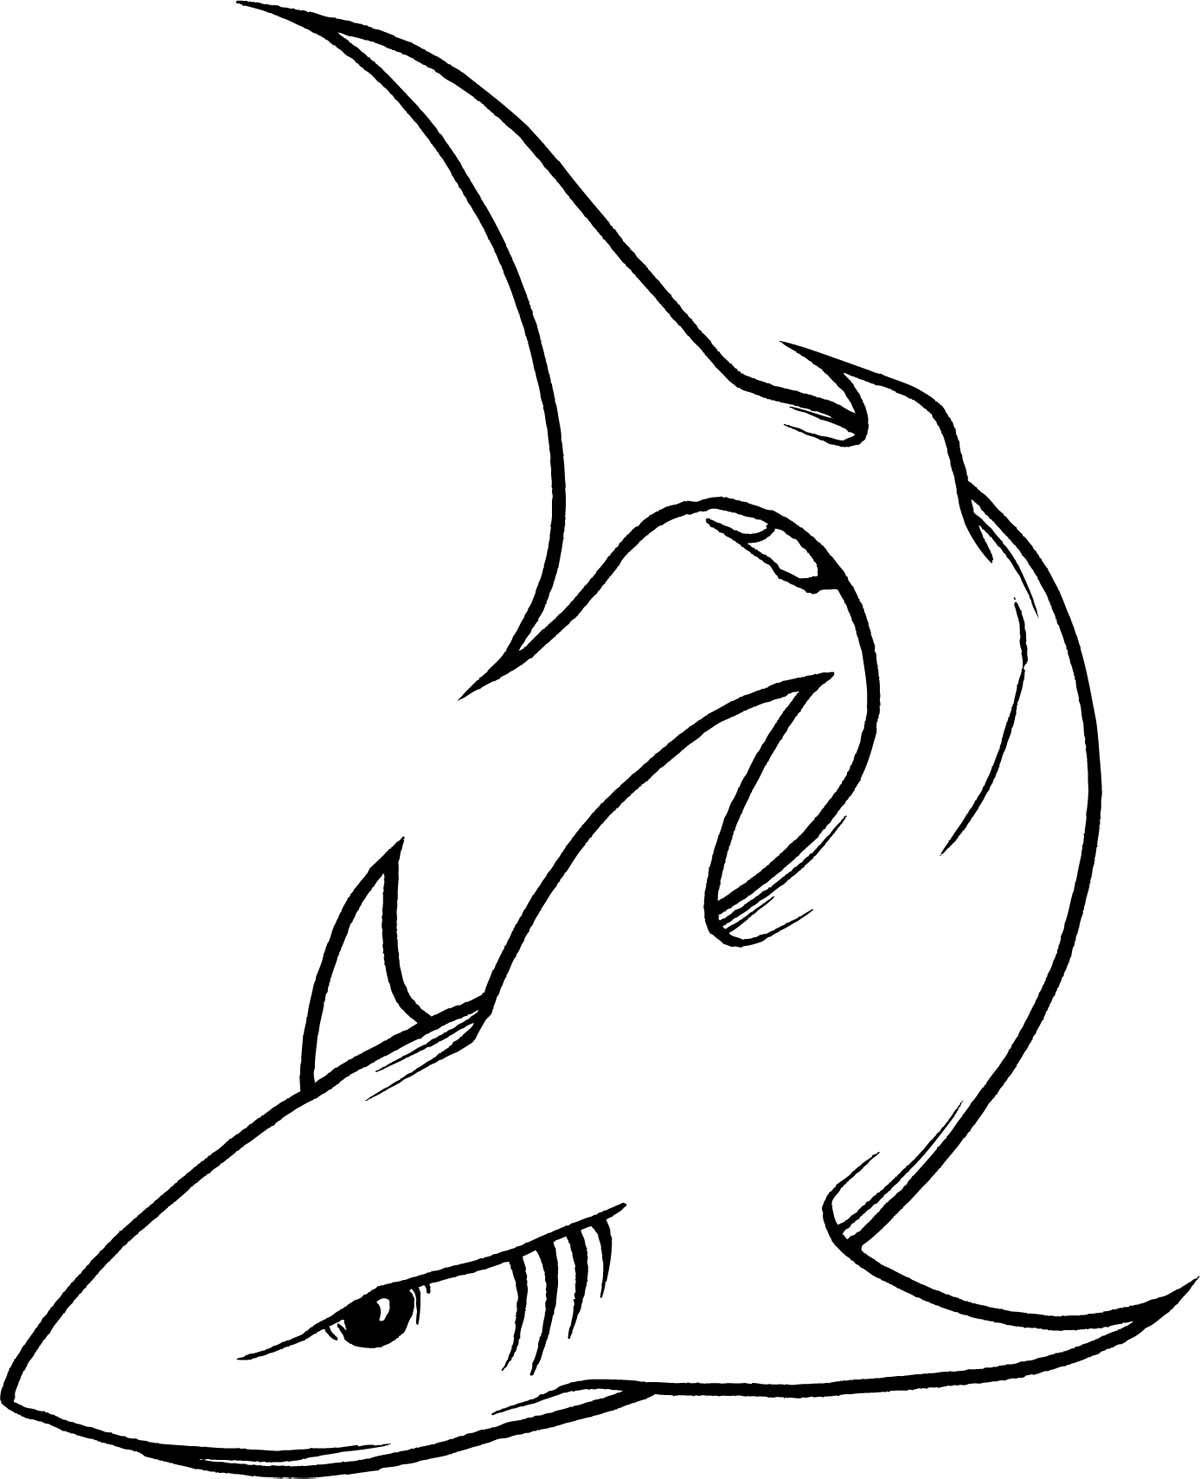 1200x1479 Outline Drawing Of A Shark